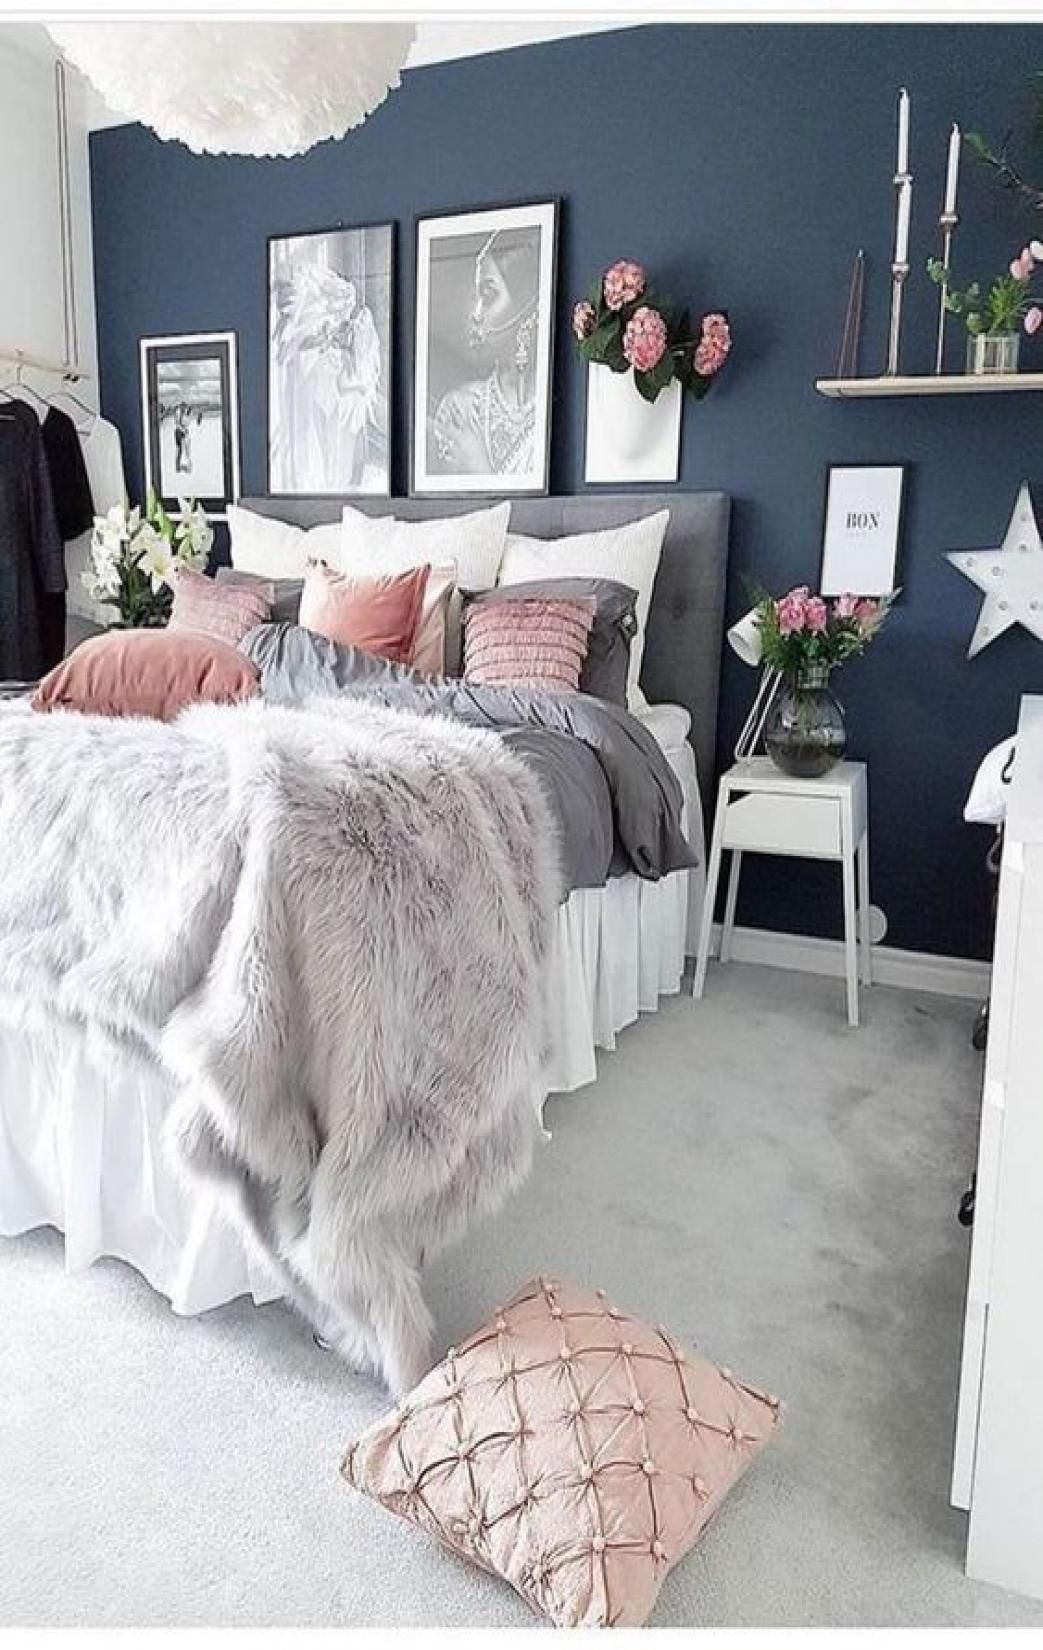 45 Awesome Minimalist Bedroom Design Ideas In 2020 Small Room